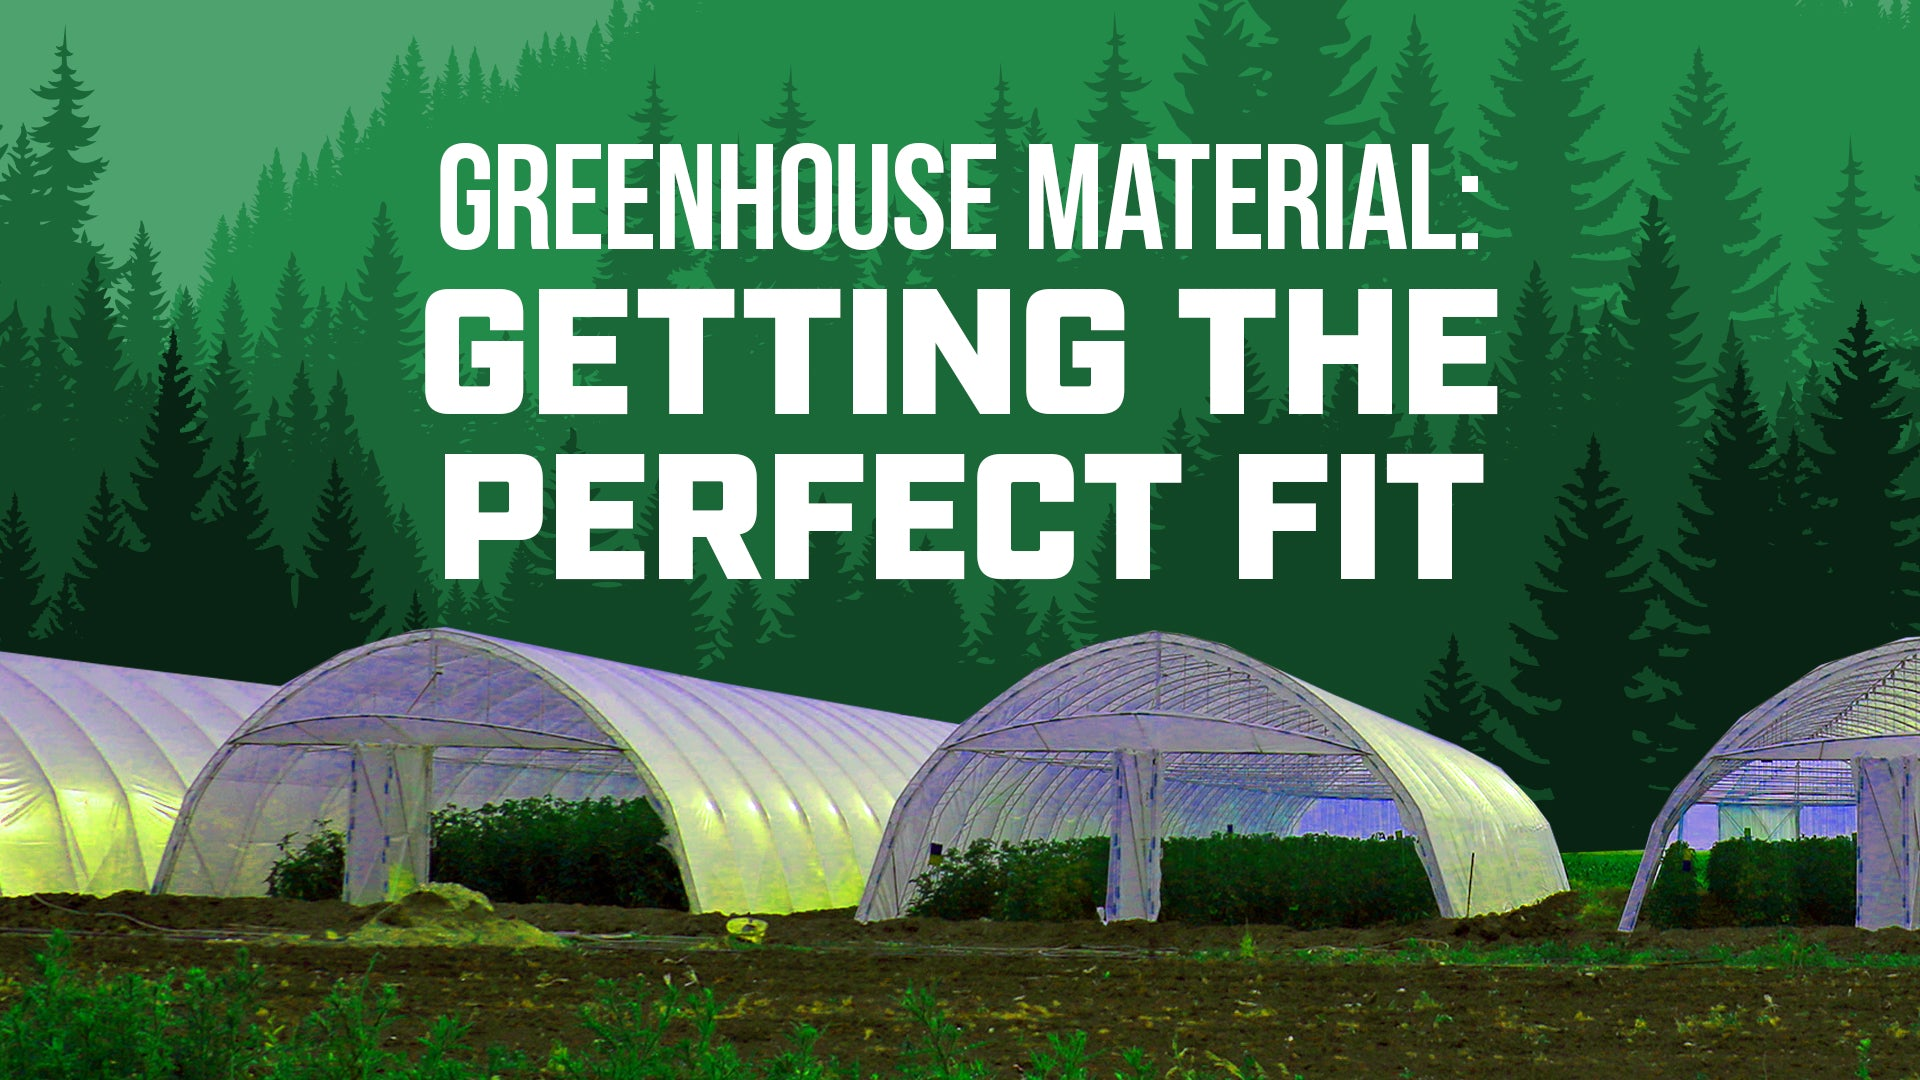 Greenhouse Material: Getting the Perfect Fit